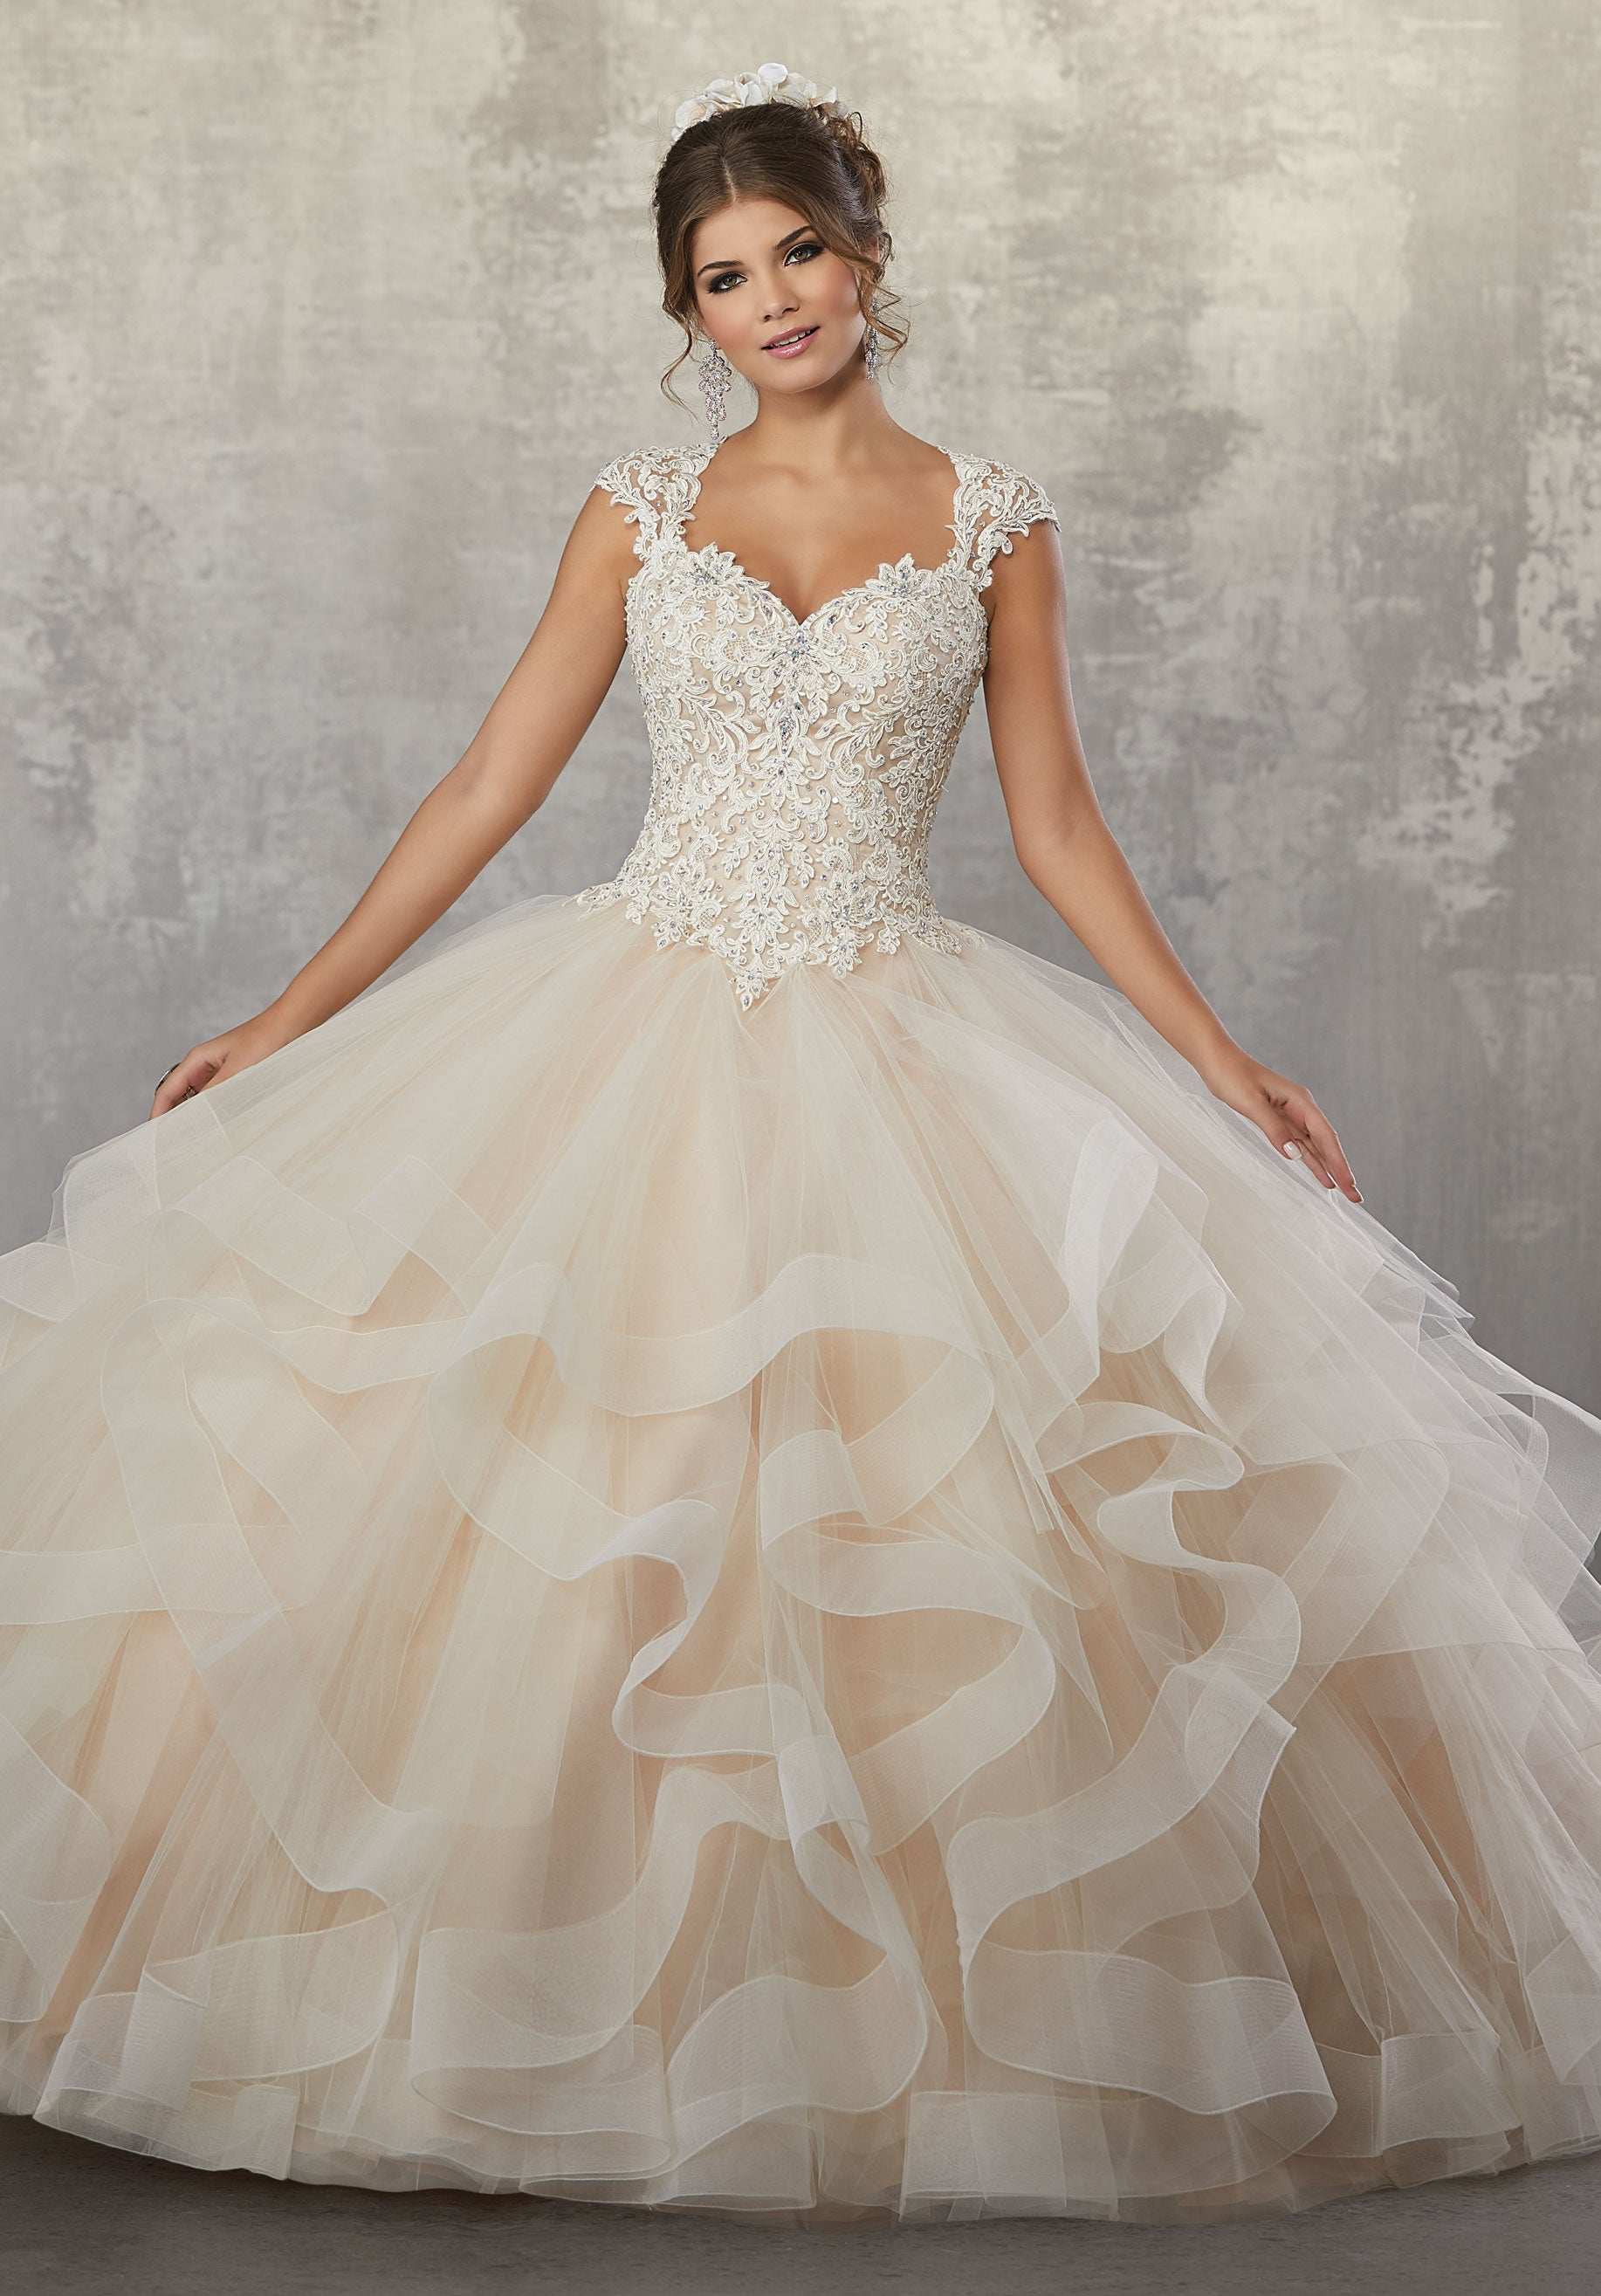 78066 Beaded Quinceanera Dress with Lace Appliqués and Necklace Back ...